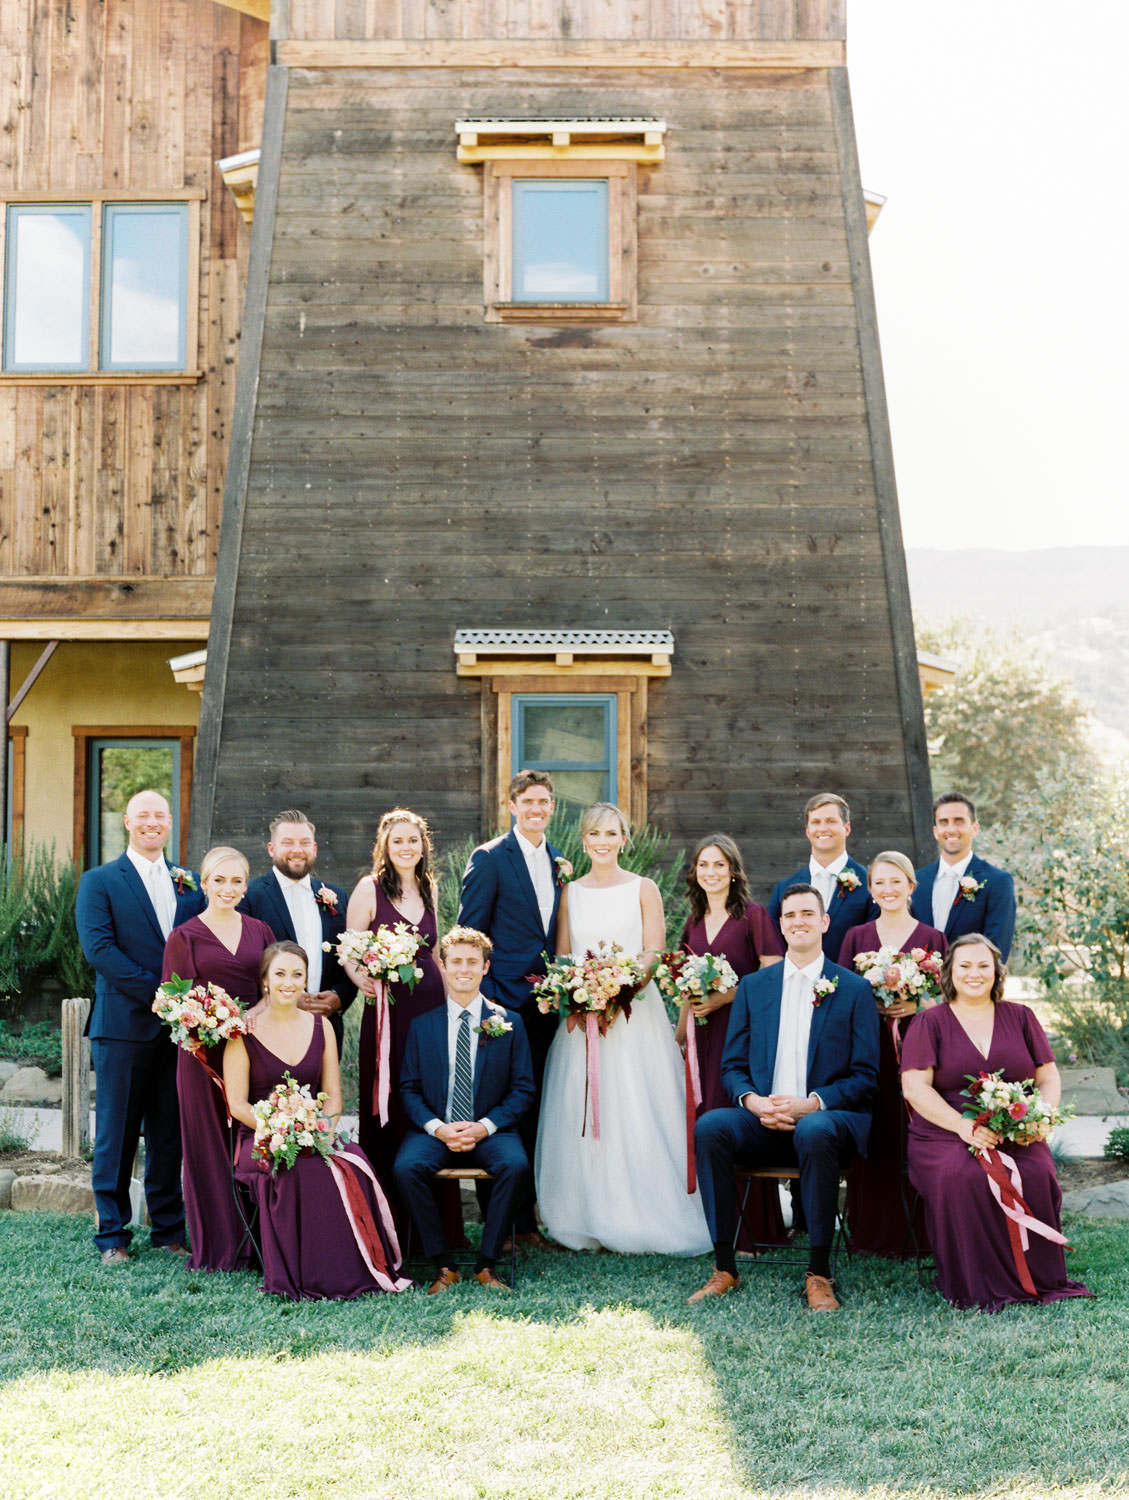 Bridesmaids in deep wine gowns by Show Me Your Mumu with bouquets of ivory, peach, wine, blush flowers and mauve, wine, and blush ribbons. Groom and groomsmen in navy linen suits with ivory tie and large boutonniere with peach and green flowers. Cavin Elizabeth Photography.